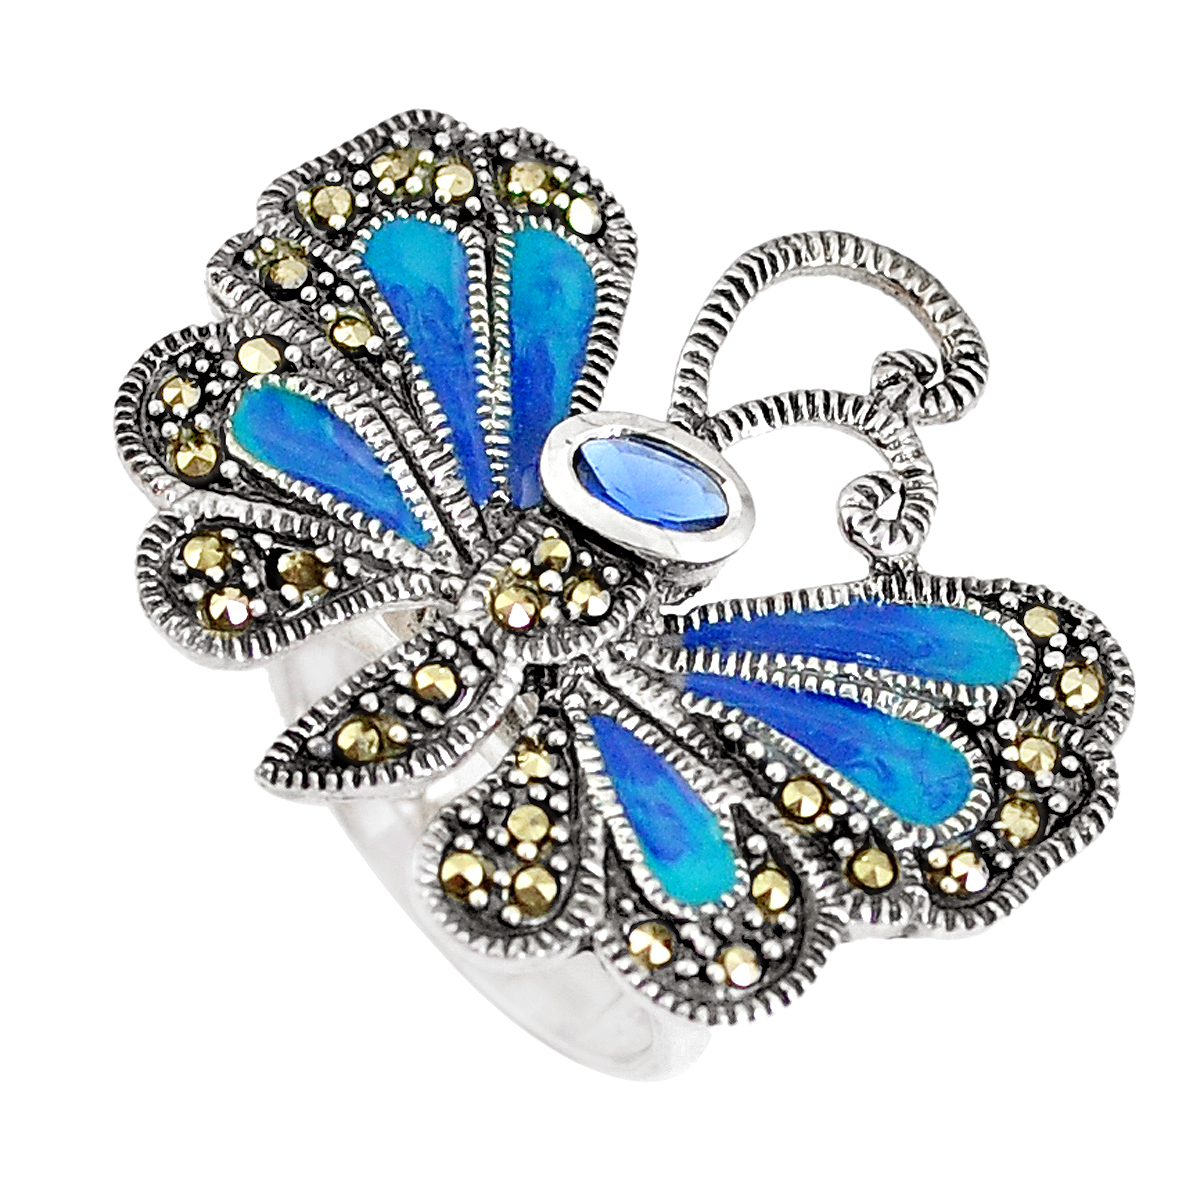 A 925 silver and marcasite butterfly shaped enamelled ring set with an oval cut blue stone, L.